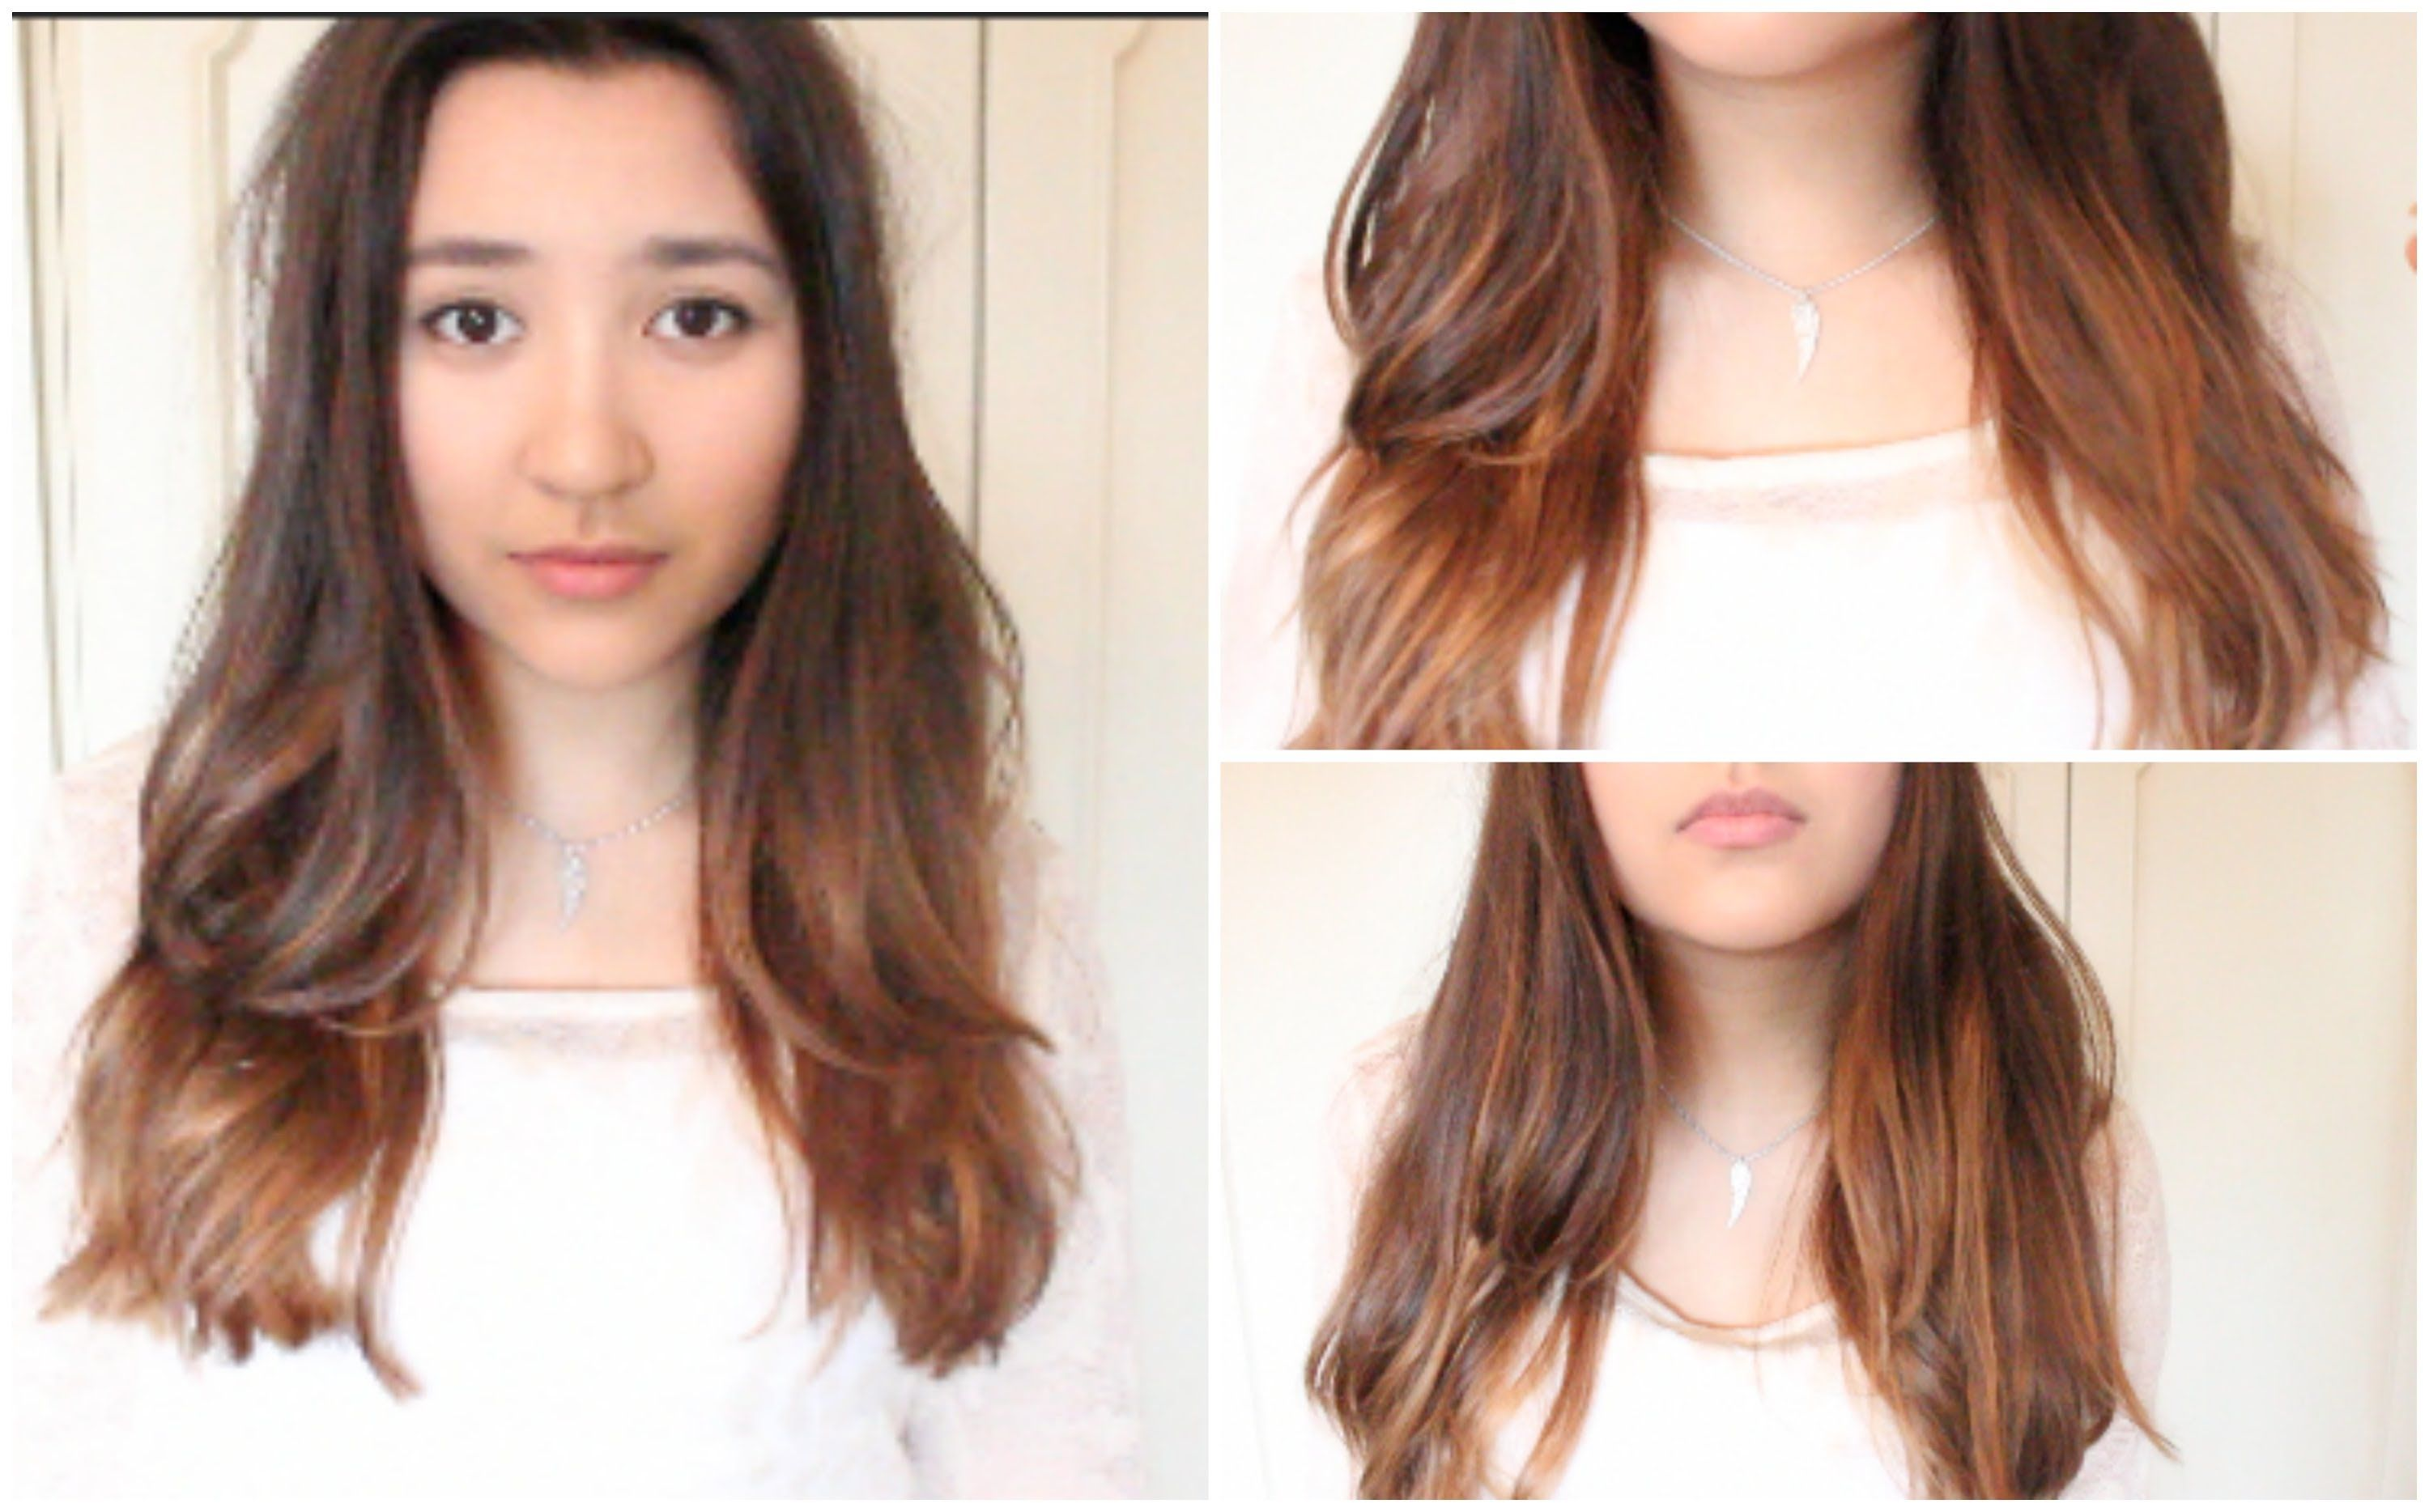 diy ombre hair highlights tutorial at home hair cuts and diy ombre hair highlights tutorial at home baditri Images